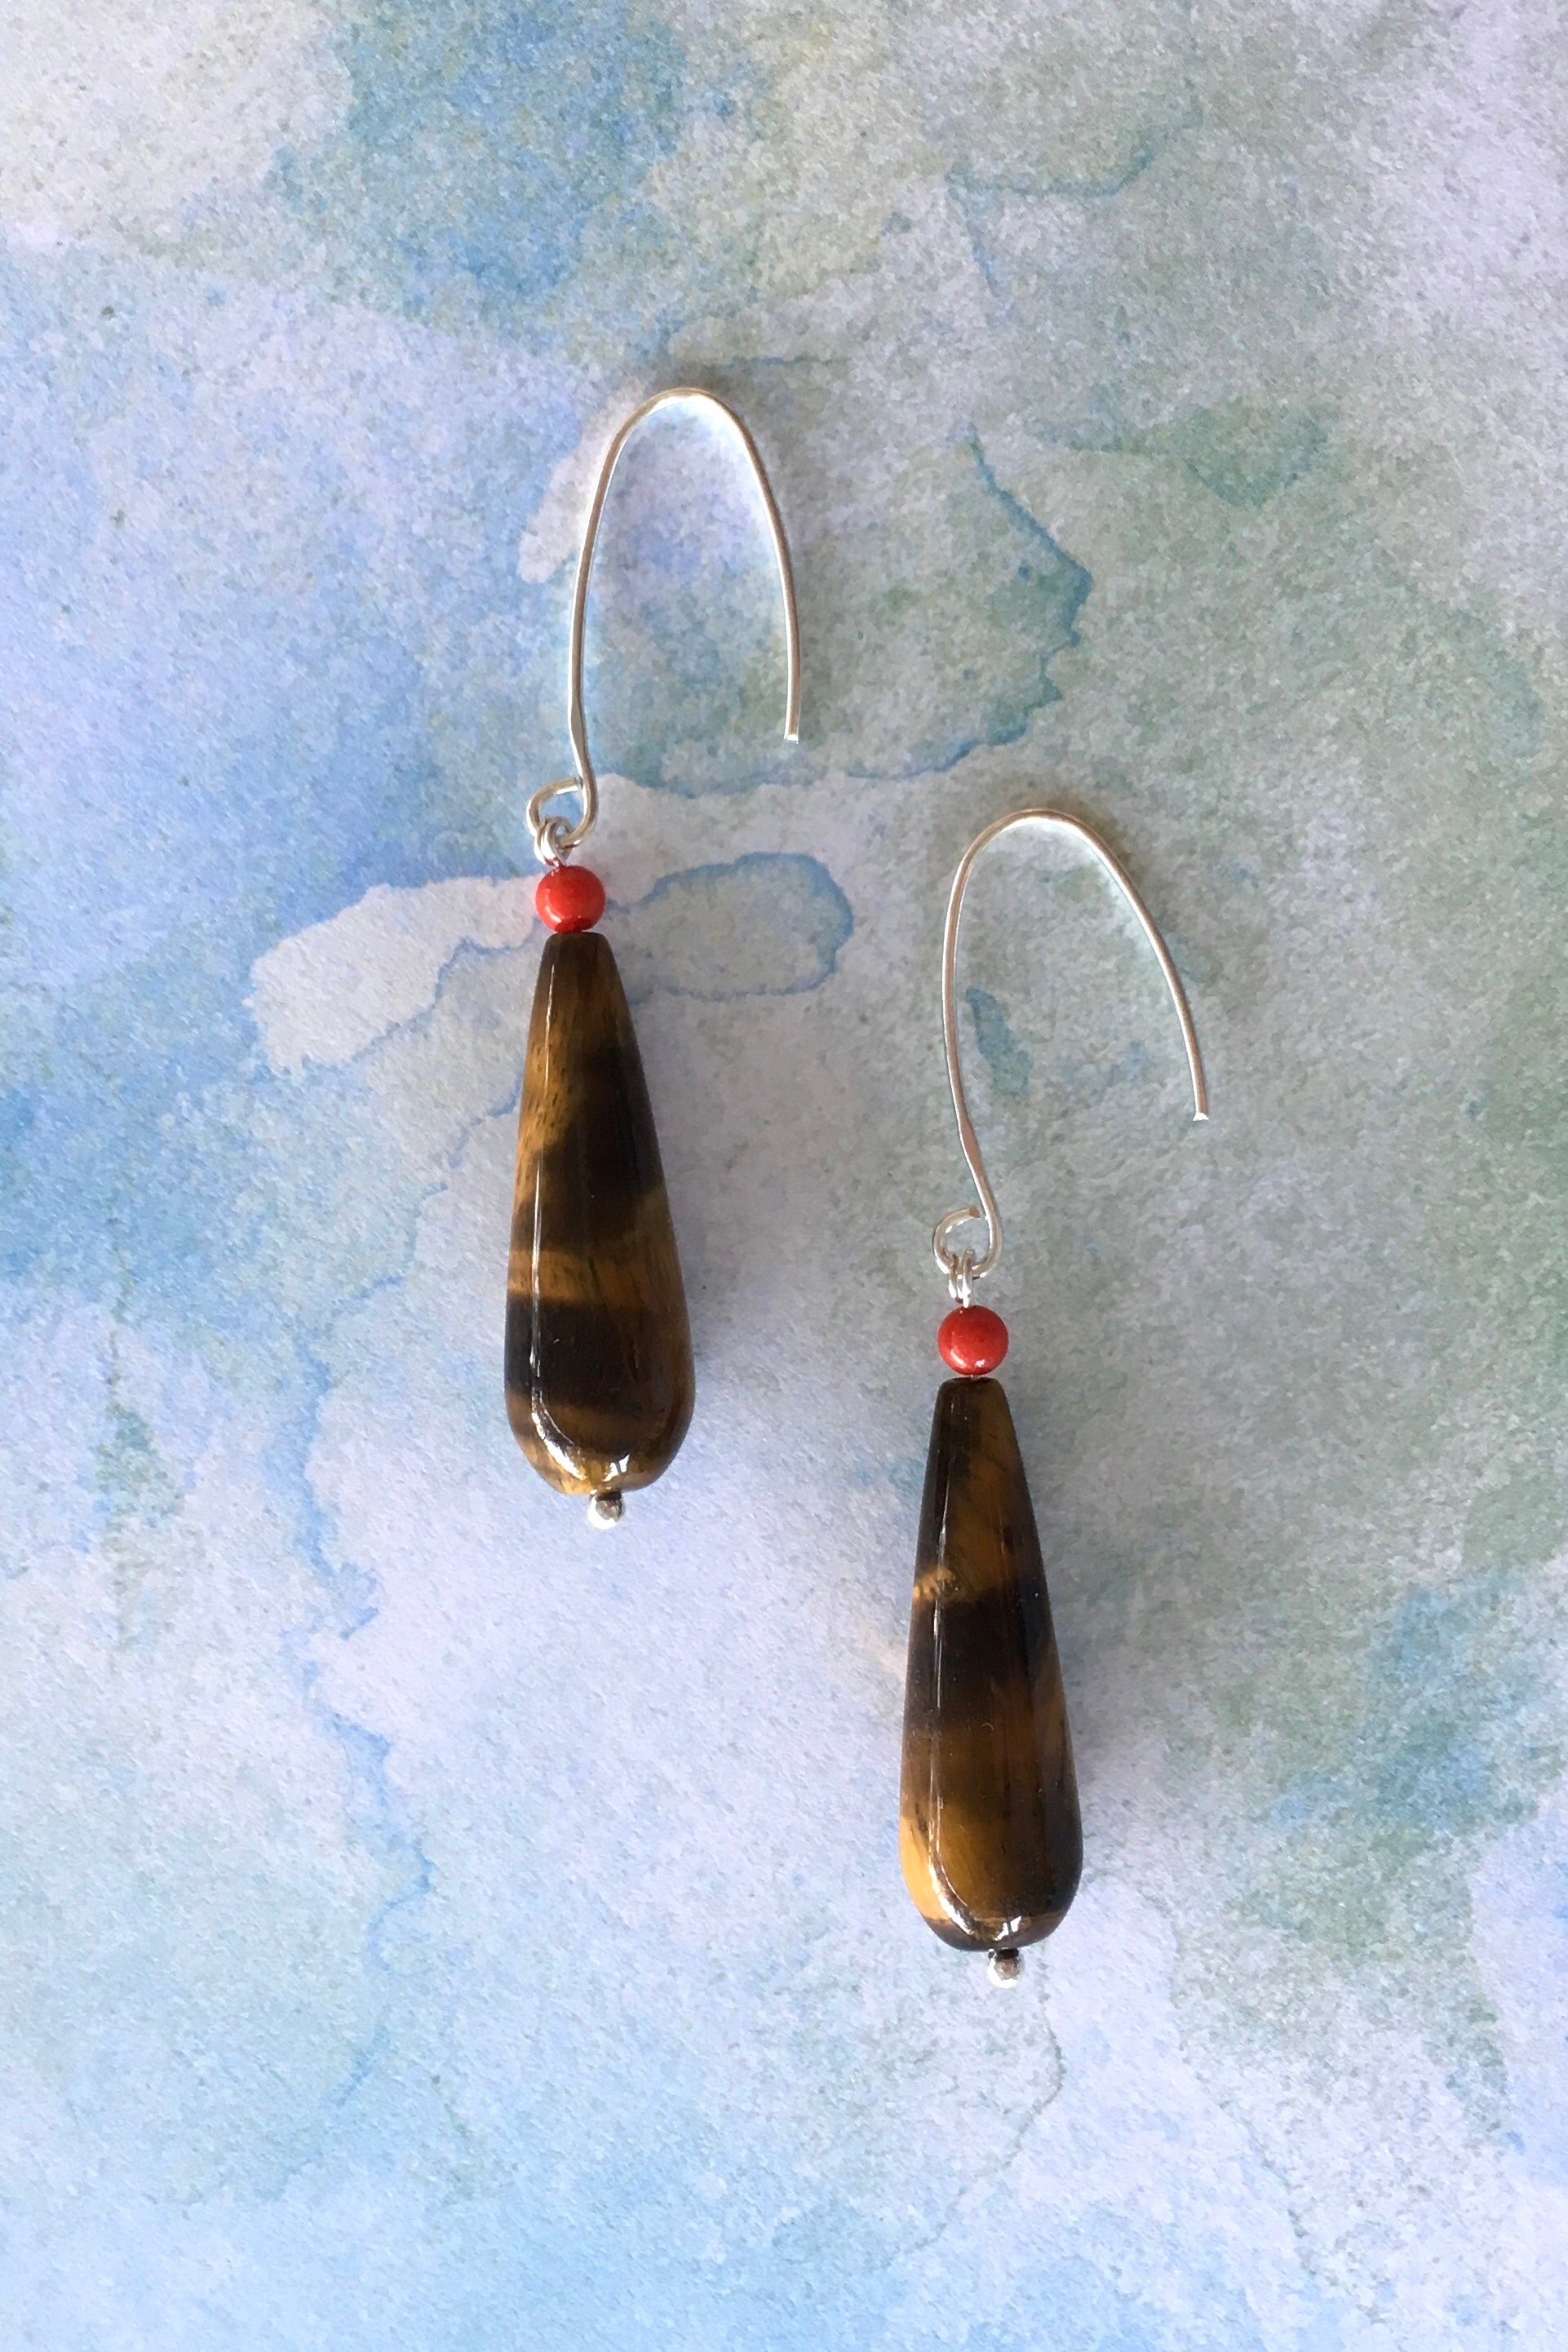 Women's jewellery. Tigers eye moonstone crystal drop earrings, drop style  bohemian and gypsy inspired sea blue stones in a teardrop shape. 925 silver hook. Great for everyday, night out, event, occasion. Beautiful gift and accessory. Lightweight. Designed in Brisbane Australia.